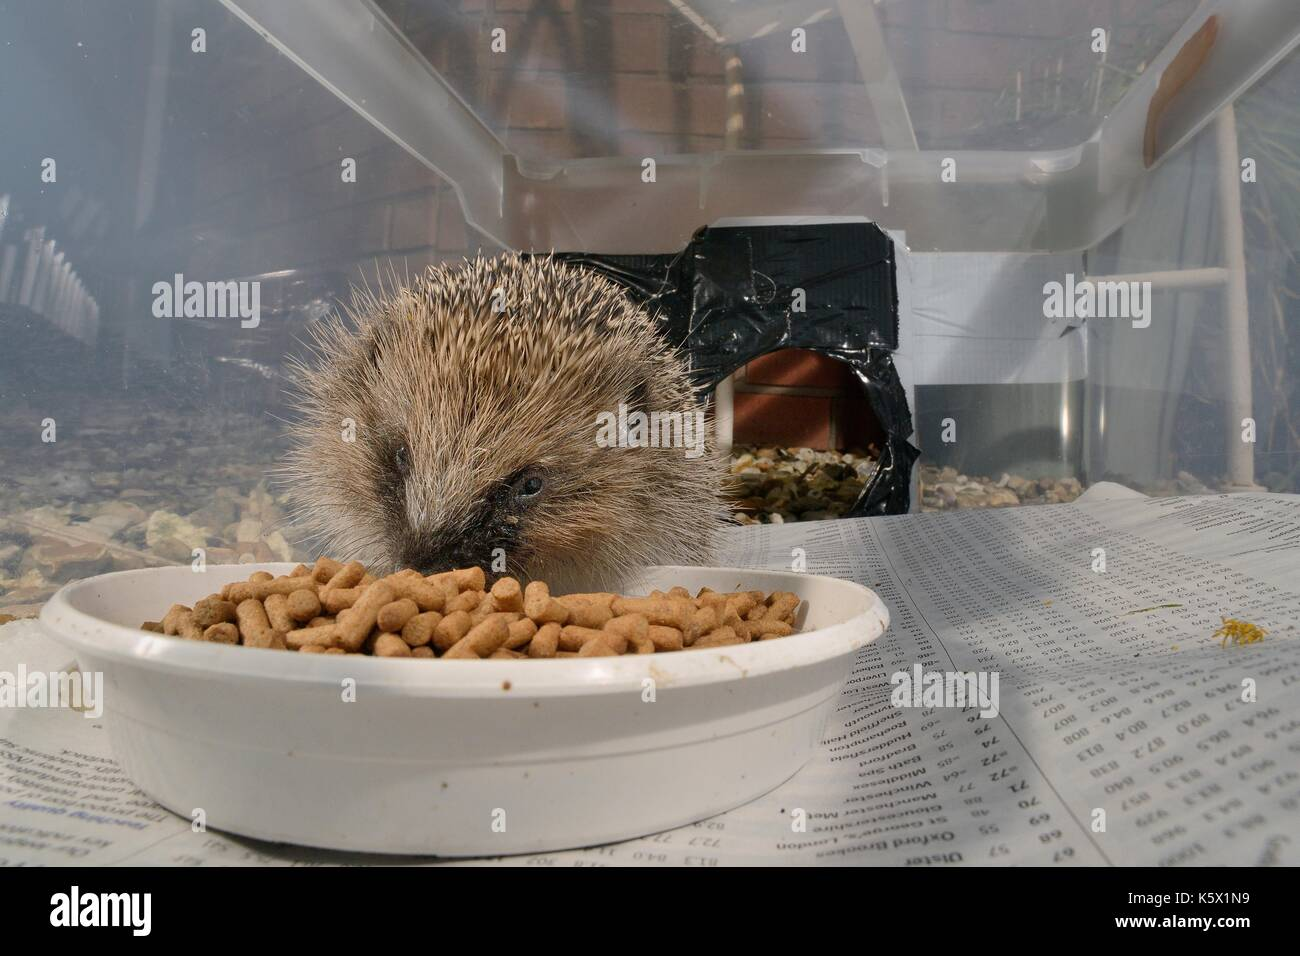 European Hedgehog (Erinaceus europaeus) feeding on hedgehog pellets in a hedgehog feeder box with a narrow entrance to exclude cats and foxes. - Stock Image